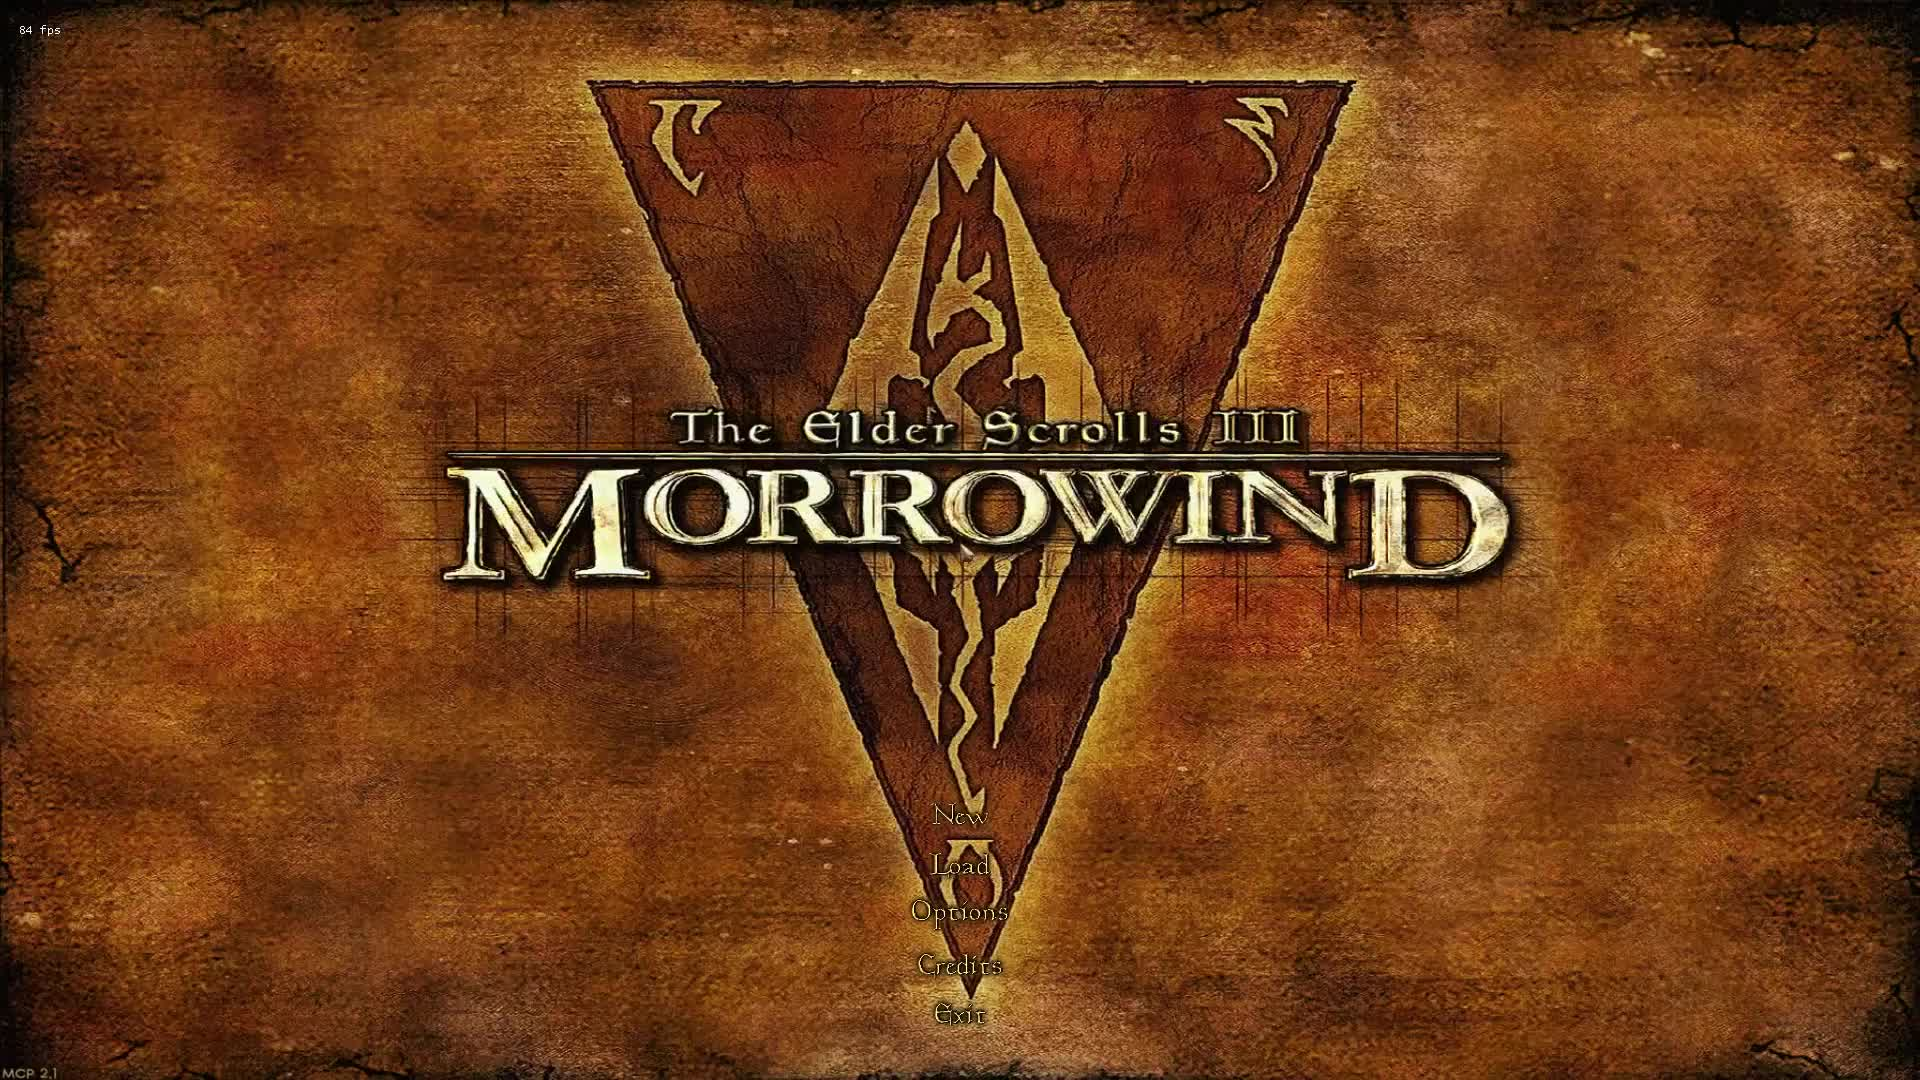 beautiful morrowind, let's play morrowind, let's play morrowind episode 1, let's play morrowind khajiit, let's play morrowind moded, let's play morrowind part 1, lets play morrowind, lets play morrowind episode 1, lets play morrowind modded, lets play morrowind part 1, modded morrowind, modded morrowind let's play, morrowind fully modded, morrowind gameplay, morrowind let's play, morrowind mgso, morrowind modded, morrowind overhaul, morrowind overhaul 3.0, morrowind part 1, Let's Play Morrowind Modded - Part 1 - Beautiful! Overhaul 3.0 (Complete) GIFs